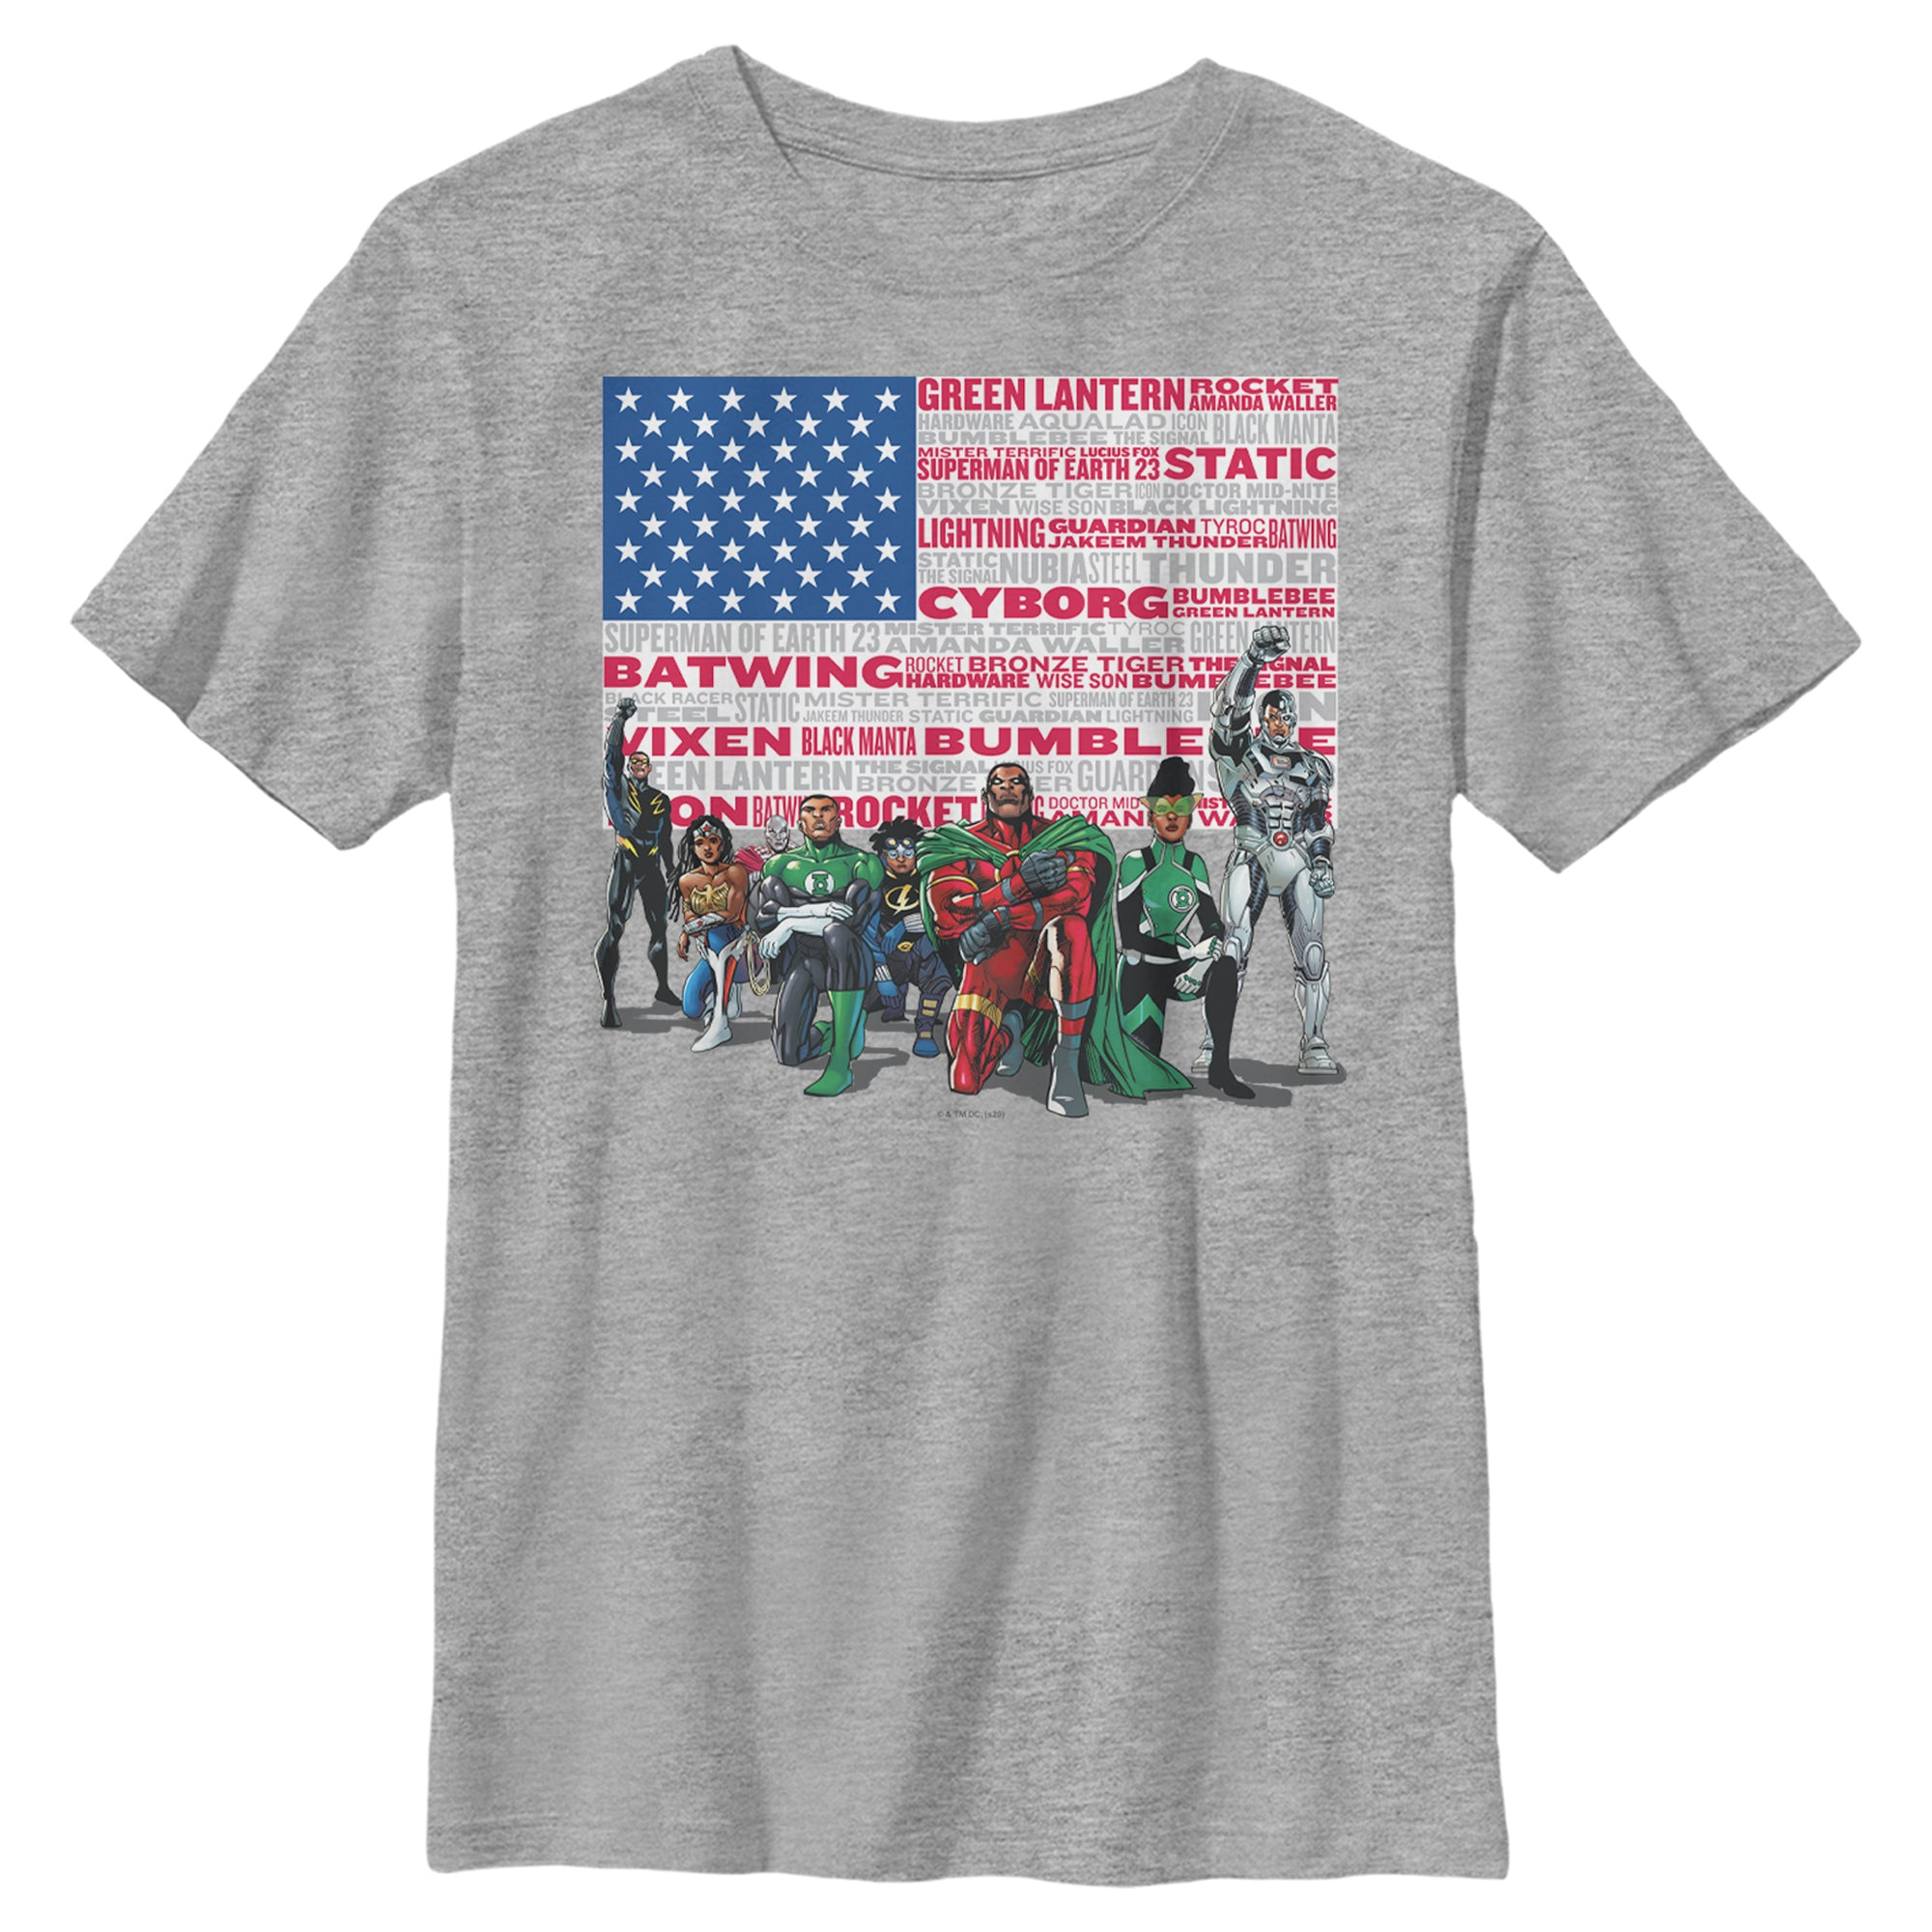 Grey Heather DC HEROES KIDS' T-SHIRT FEATURING ART BY DENYS COWAN Image